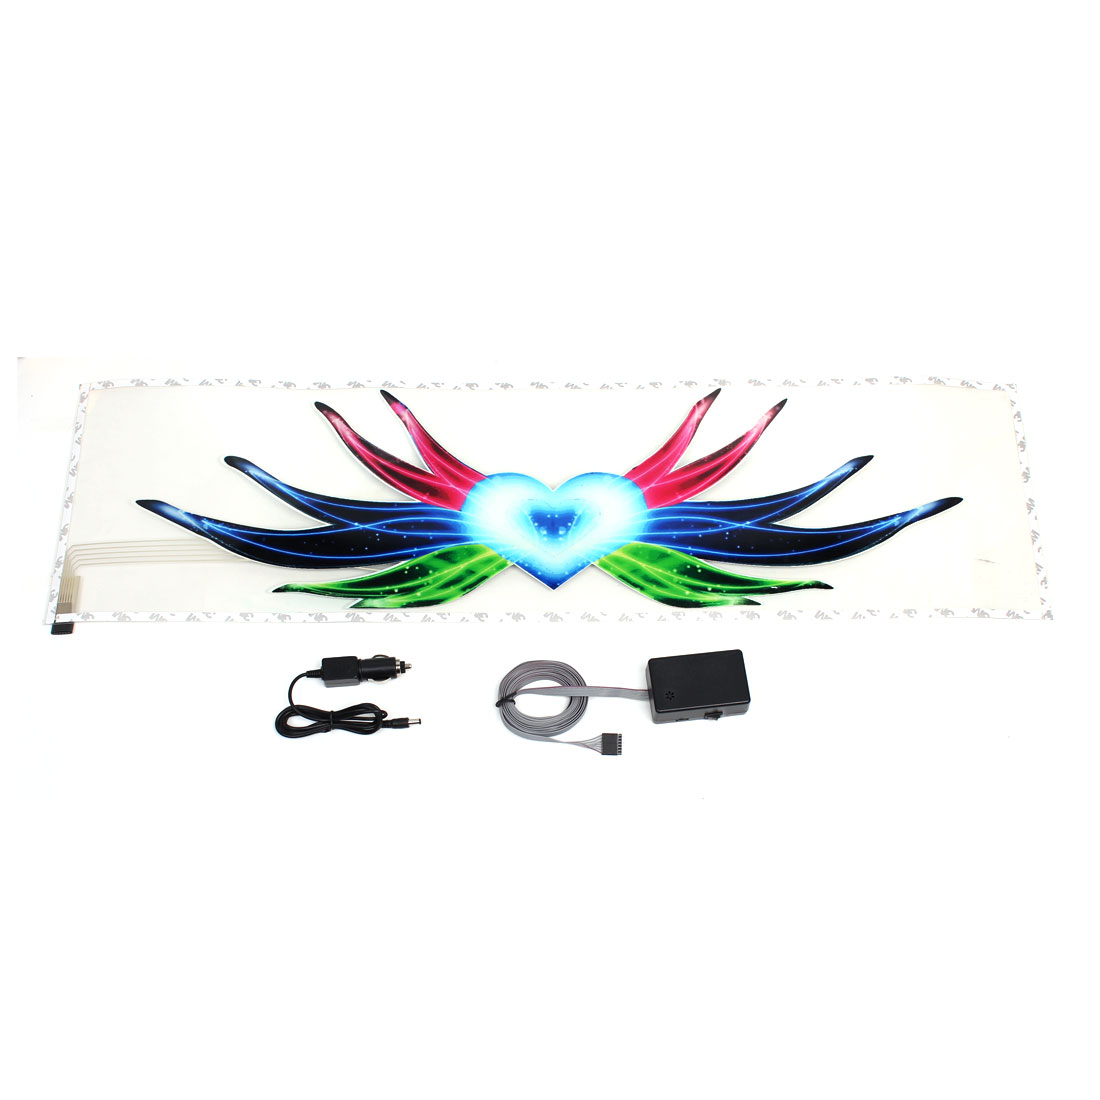 Lotus Pattern Plastic Sticker Music Sound Flash Lamp Equalizer for Car Decor